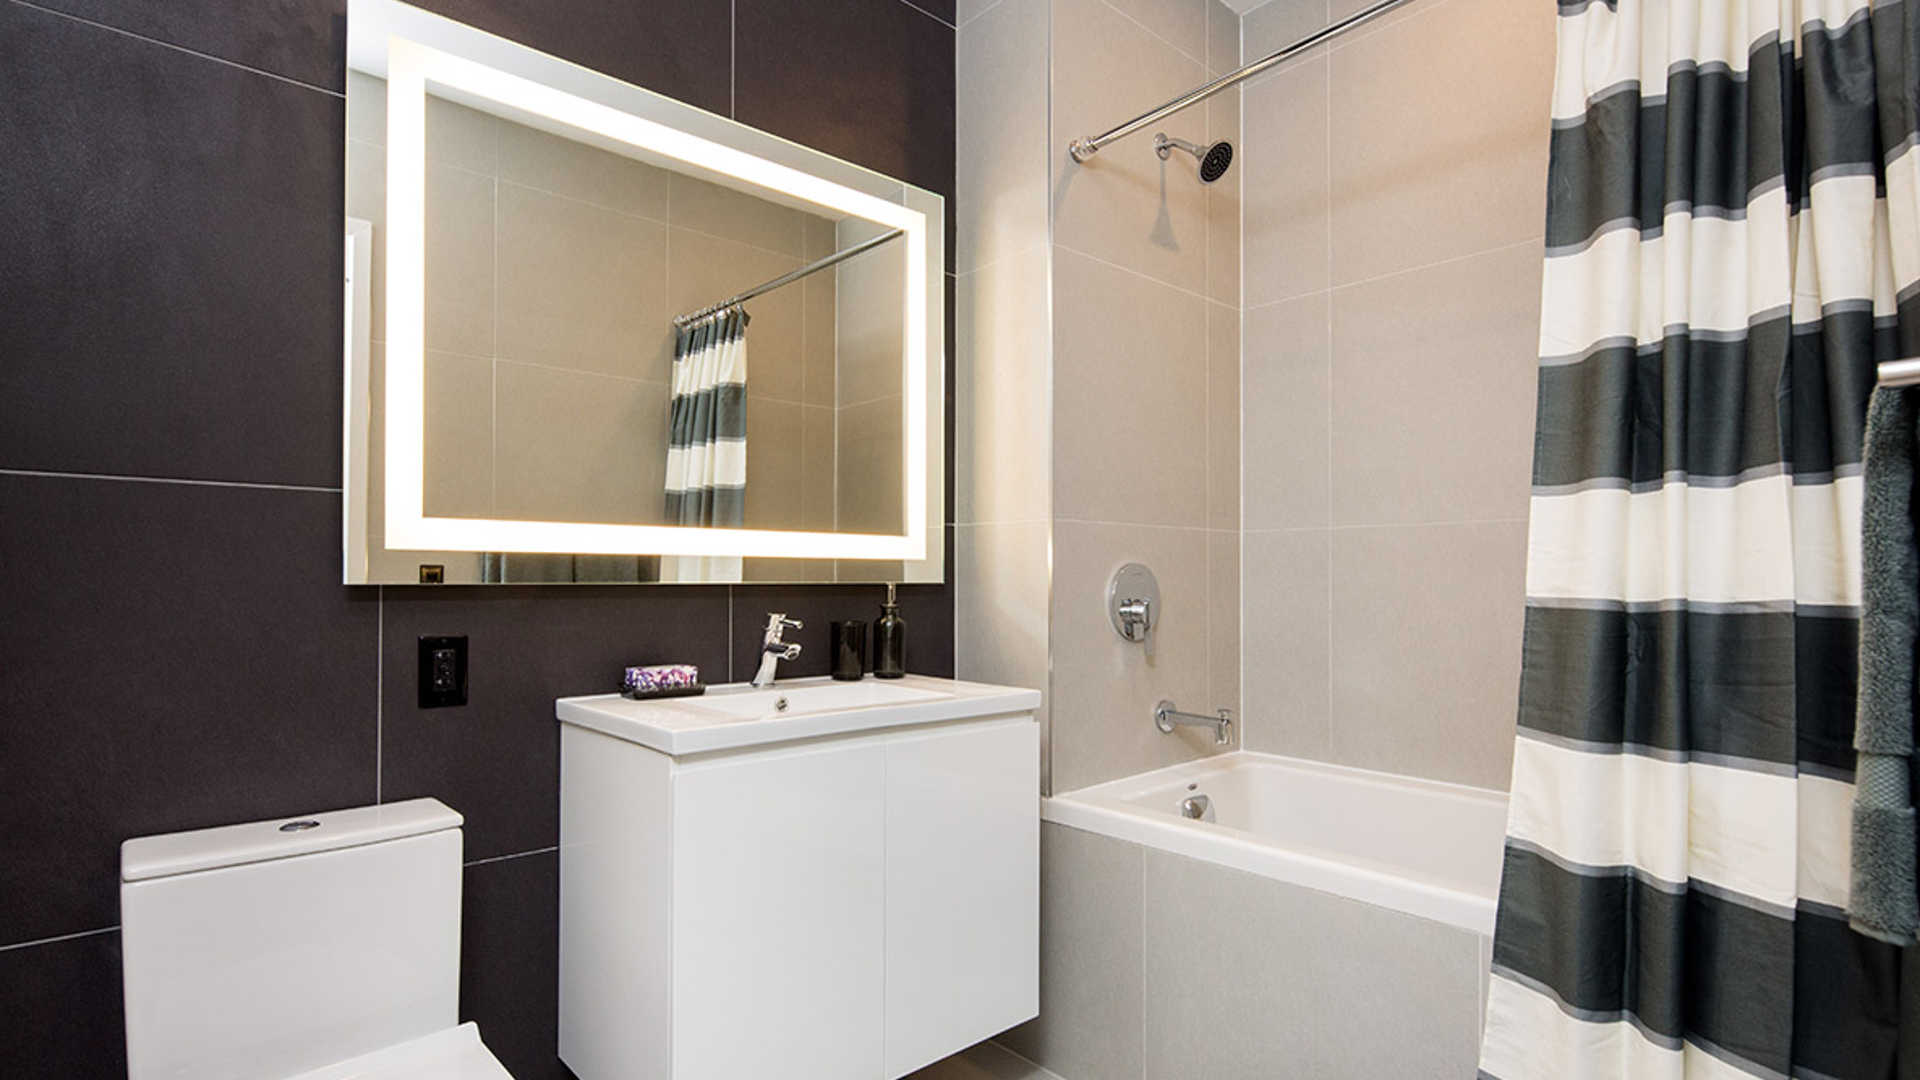 Atelier apartments bathroom